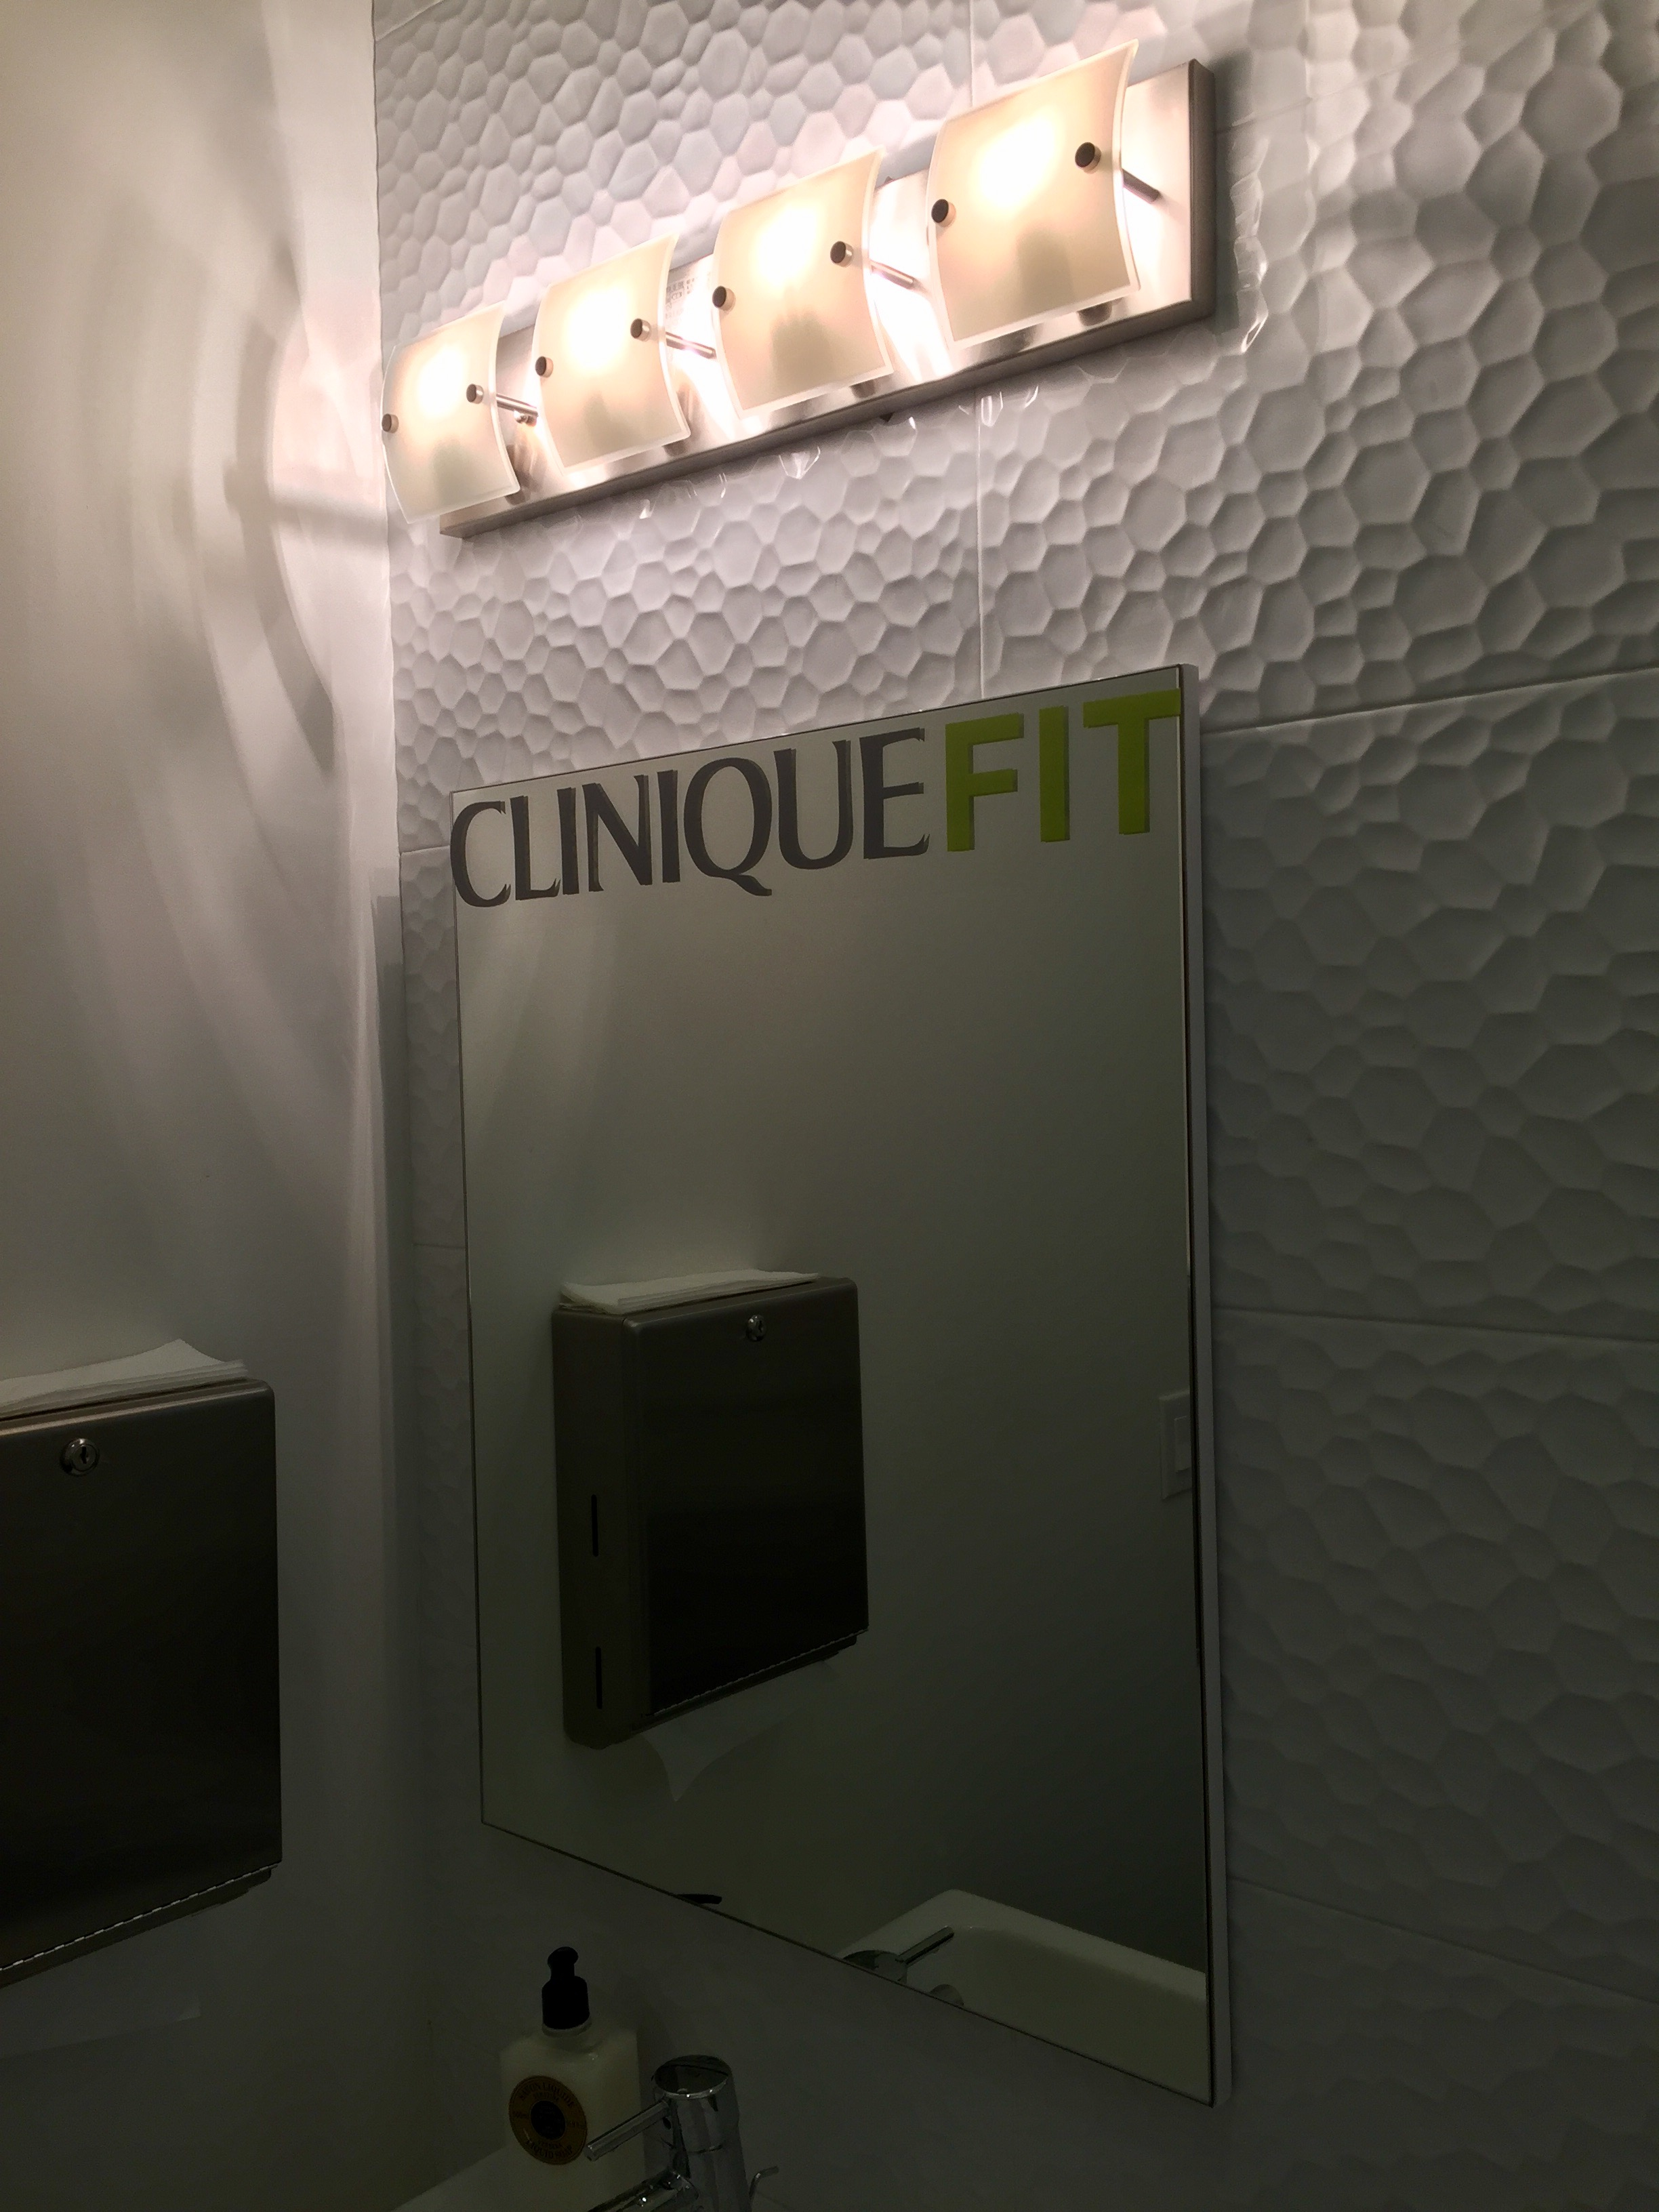 Nice branding in the bathroom